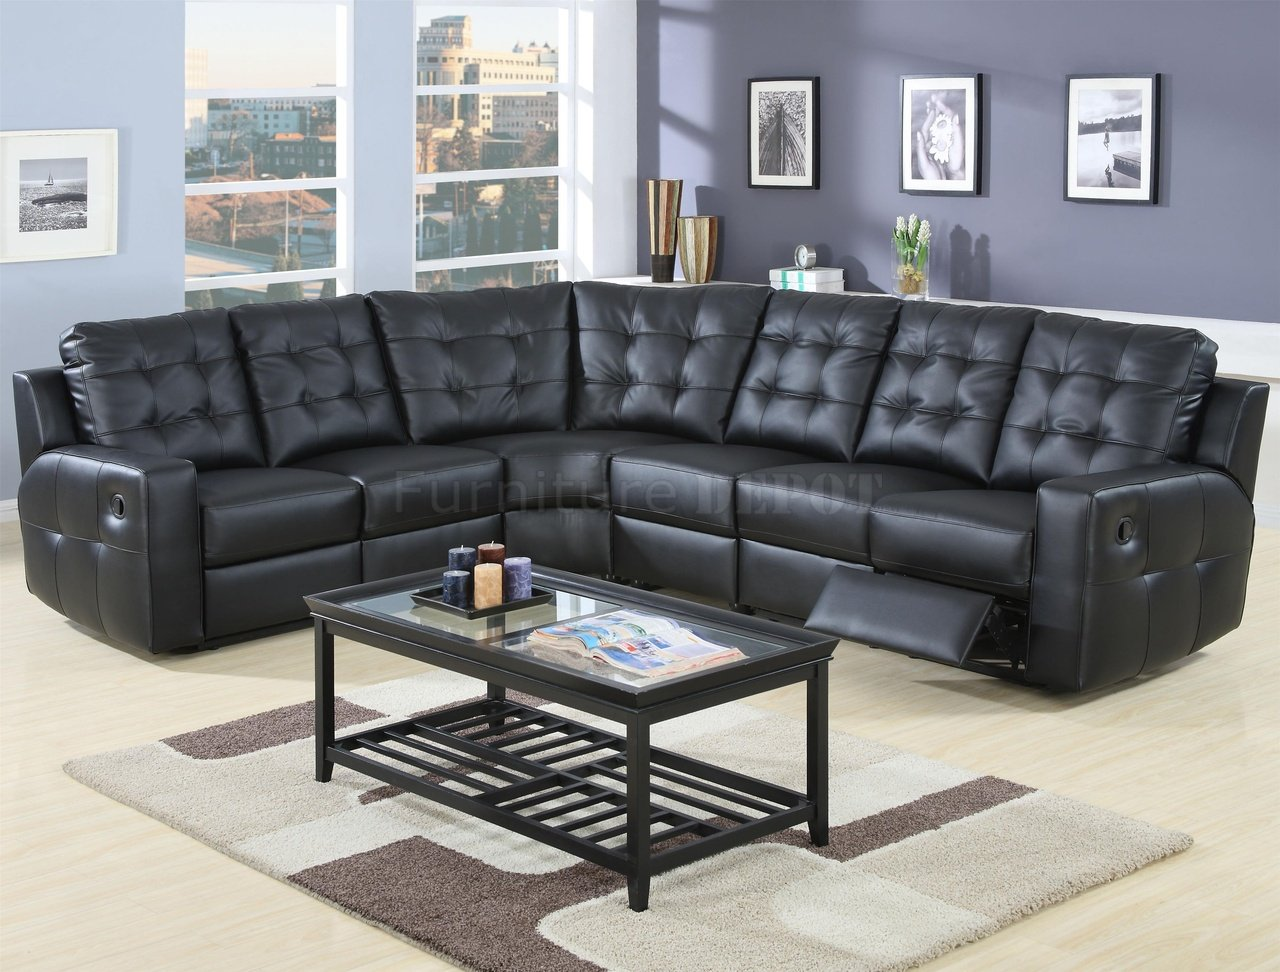 Leather Recliner Sectional Sofa. sectional leather recliner couch ...